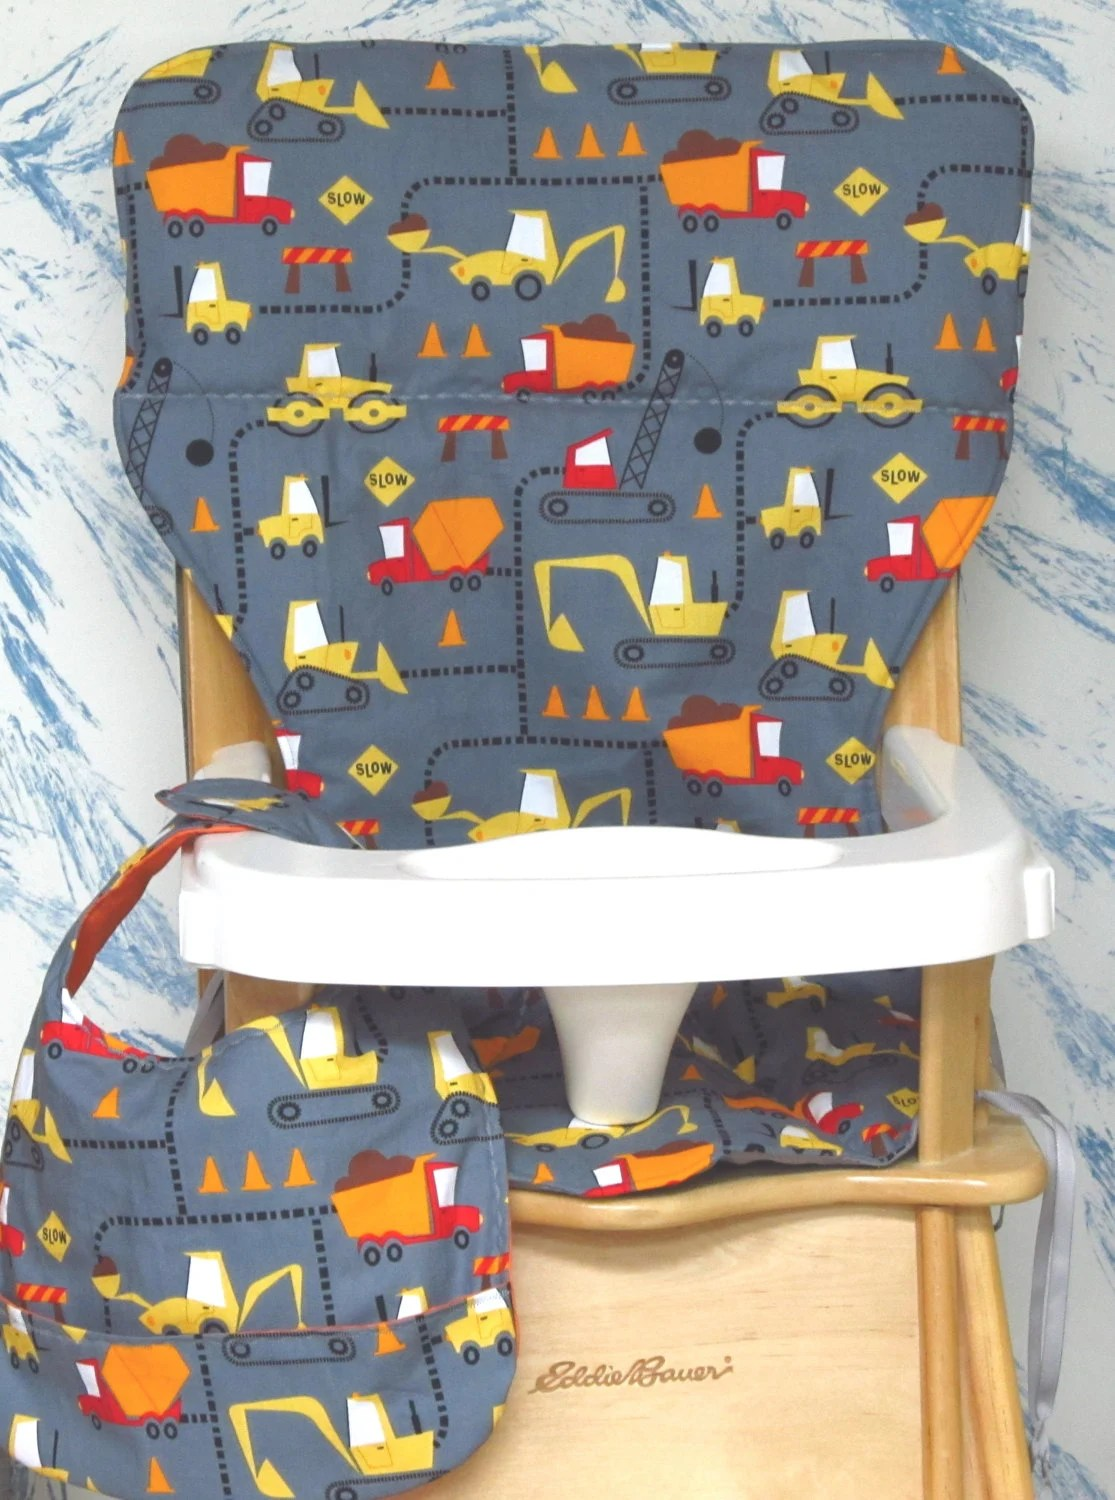 graco high chair seat cover whiskey barrel pub table and chairs eddie bauer/jenny lind wood padwith